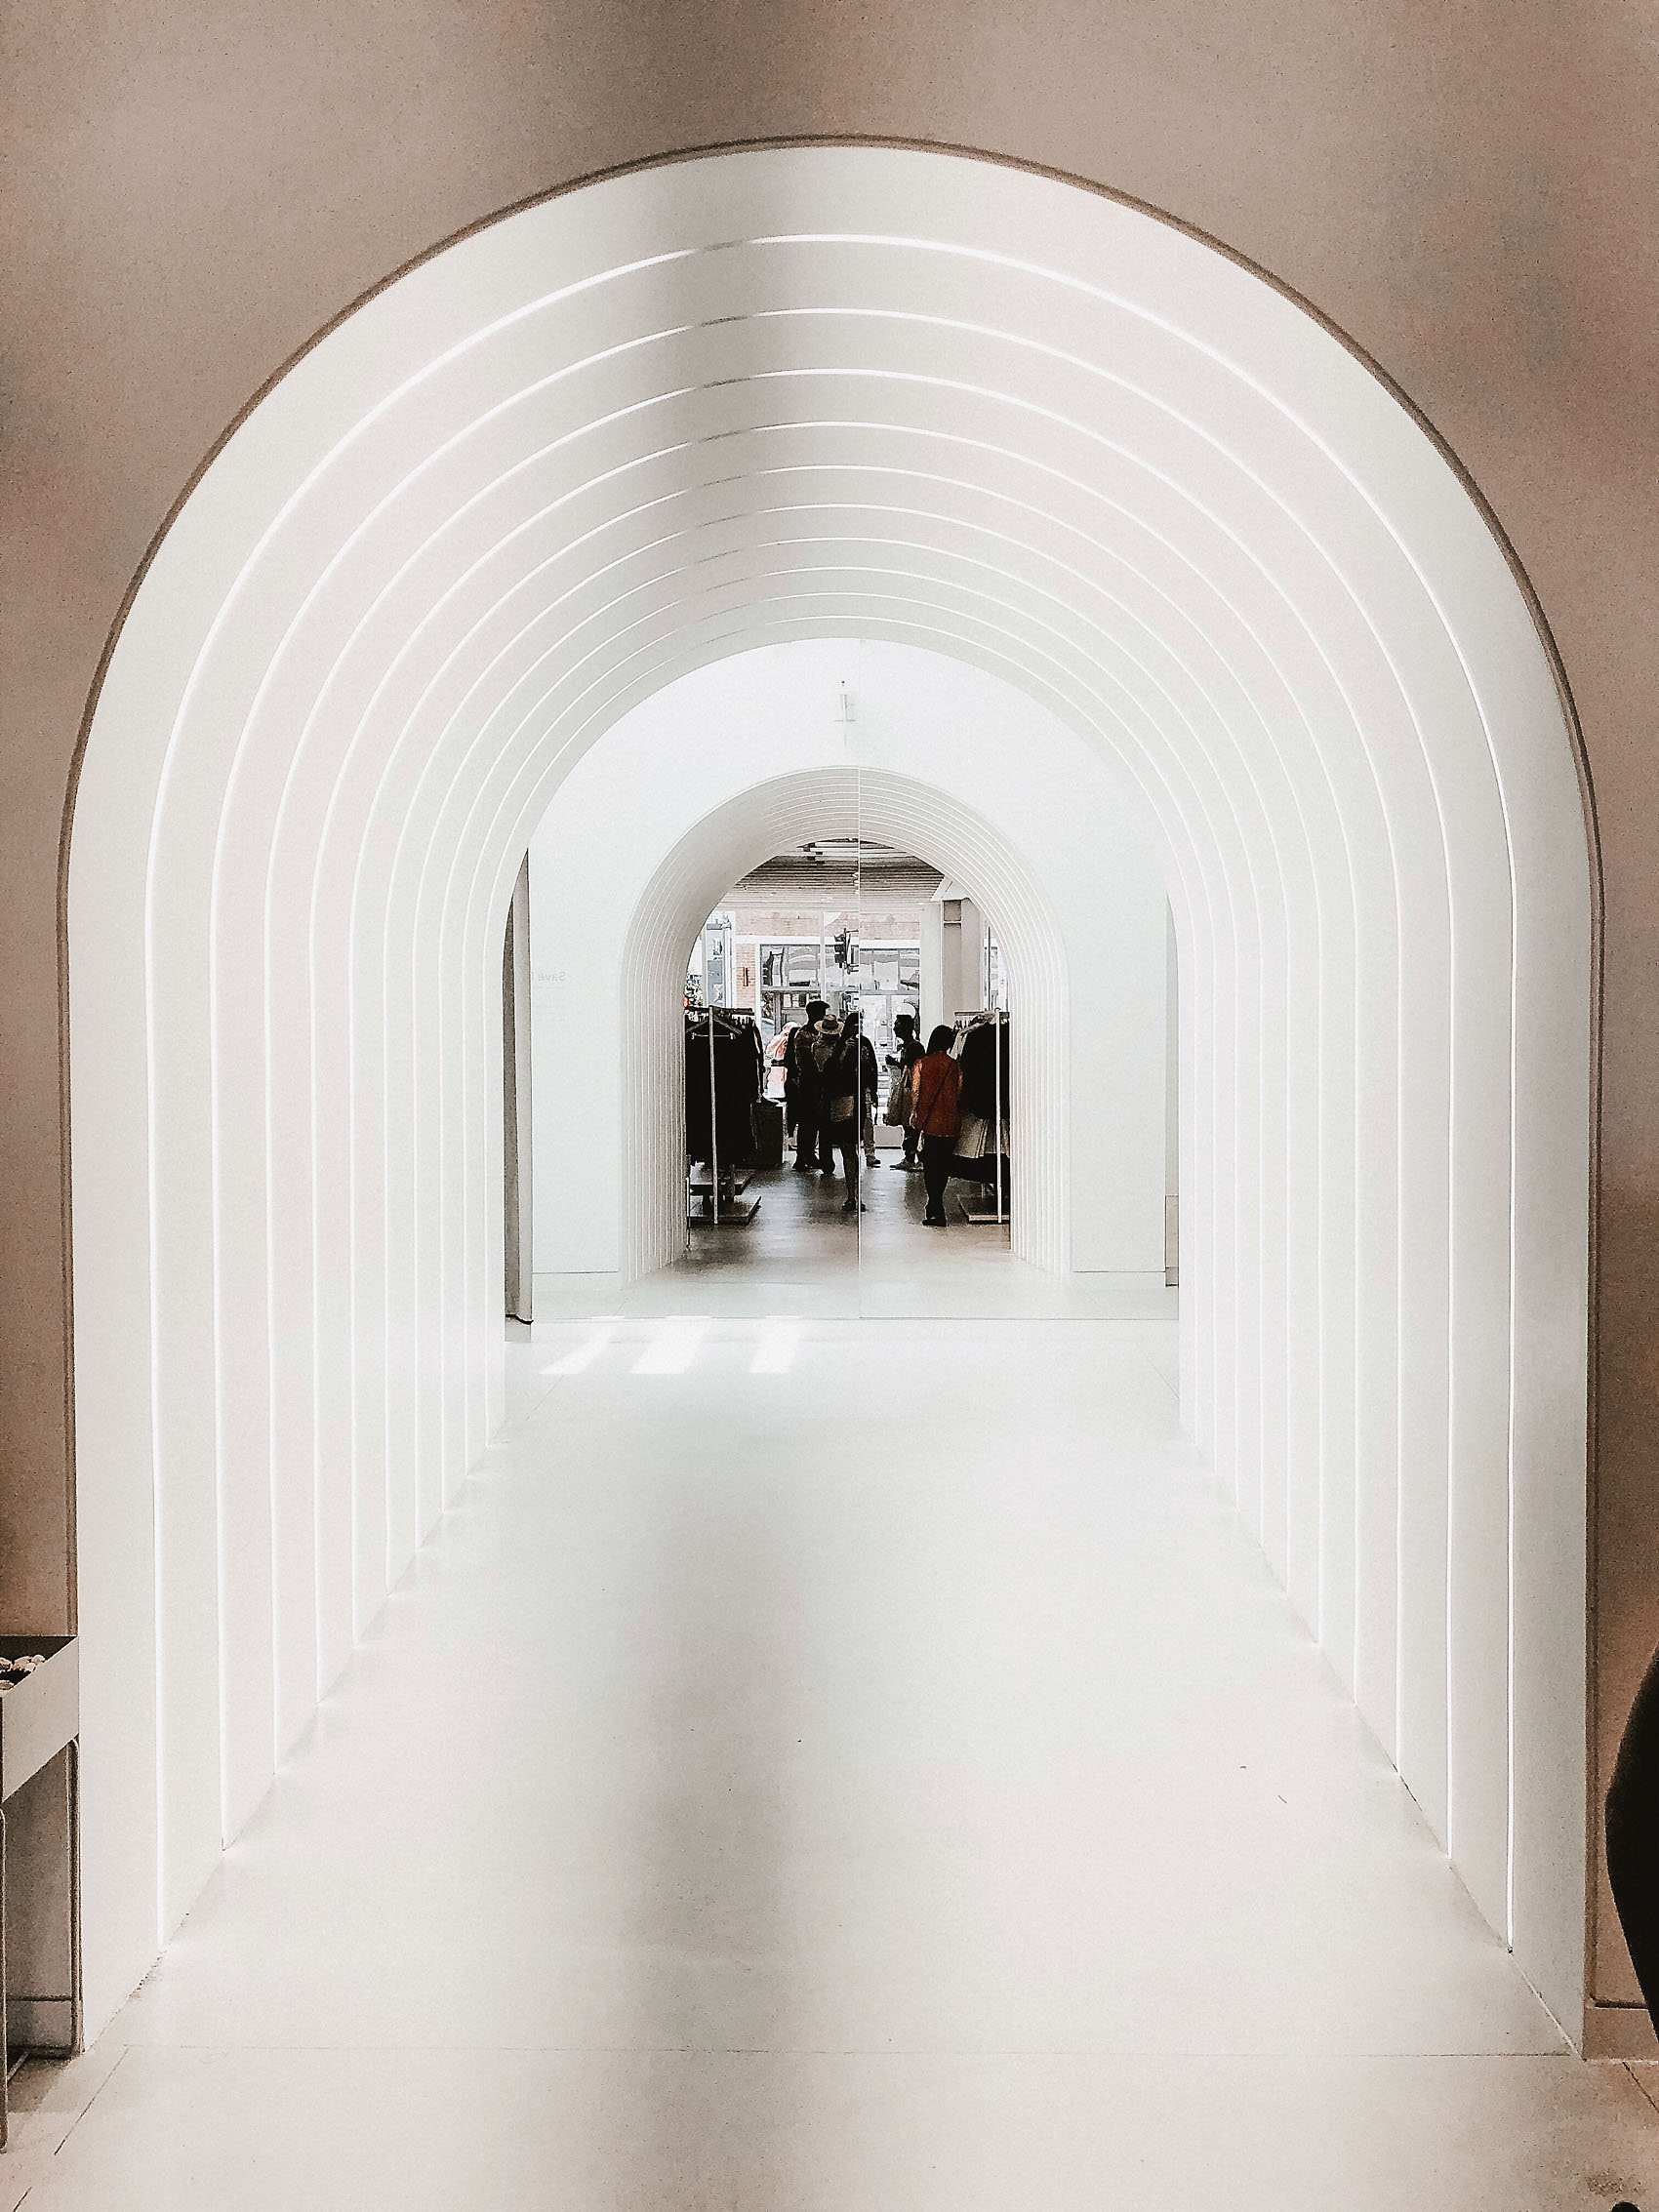 Everlane Minimalist Store Design, Dressing Room Arches